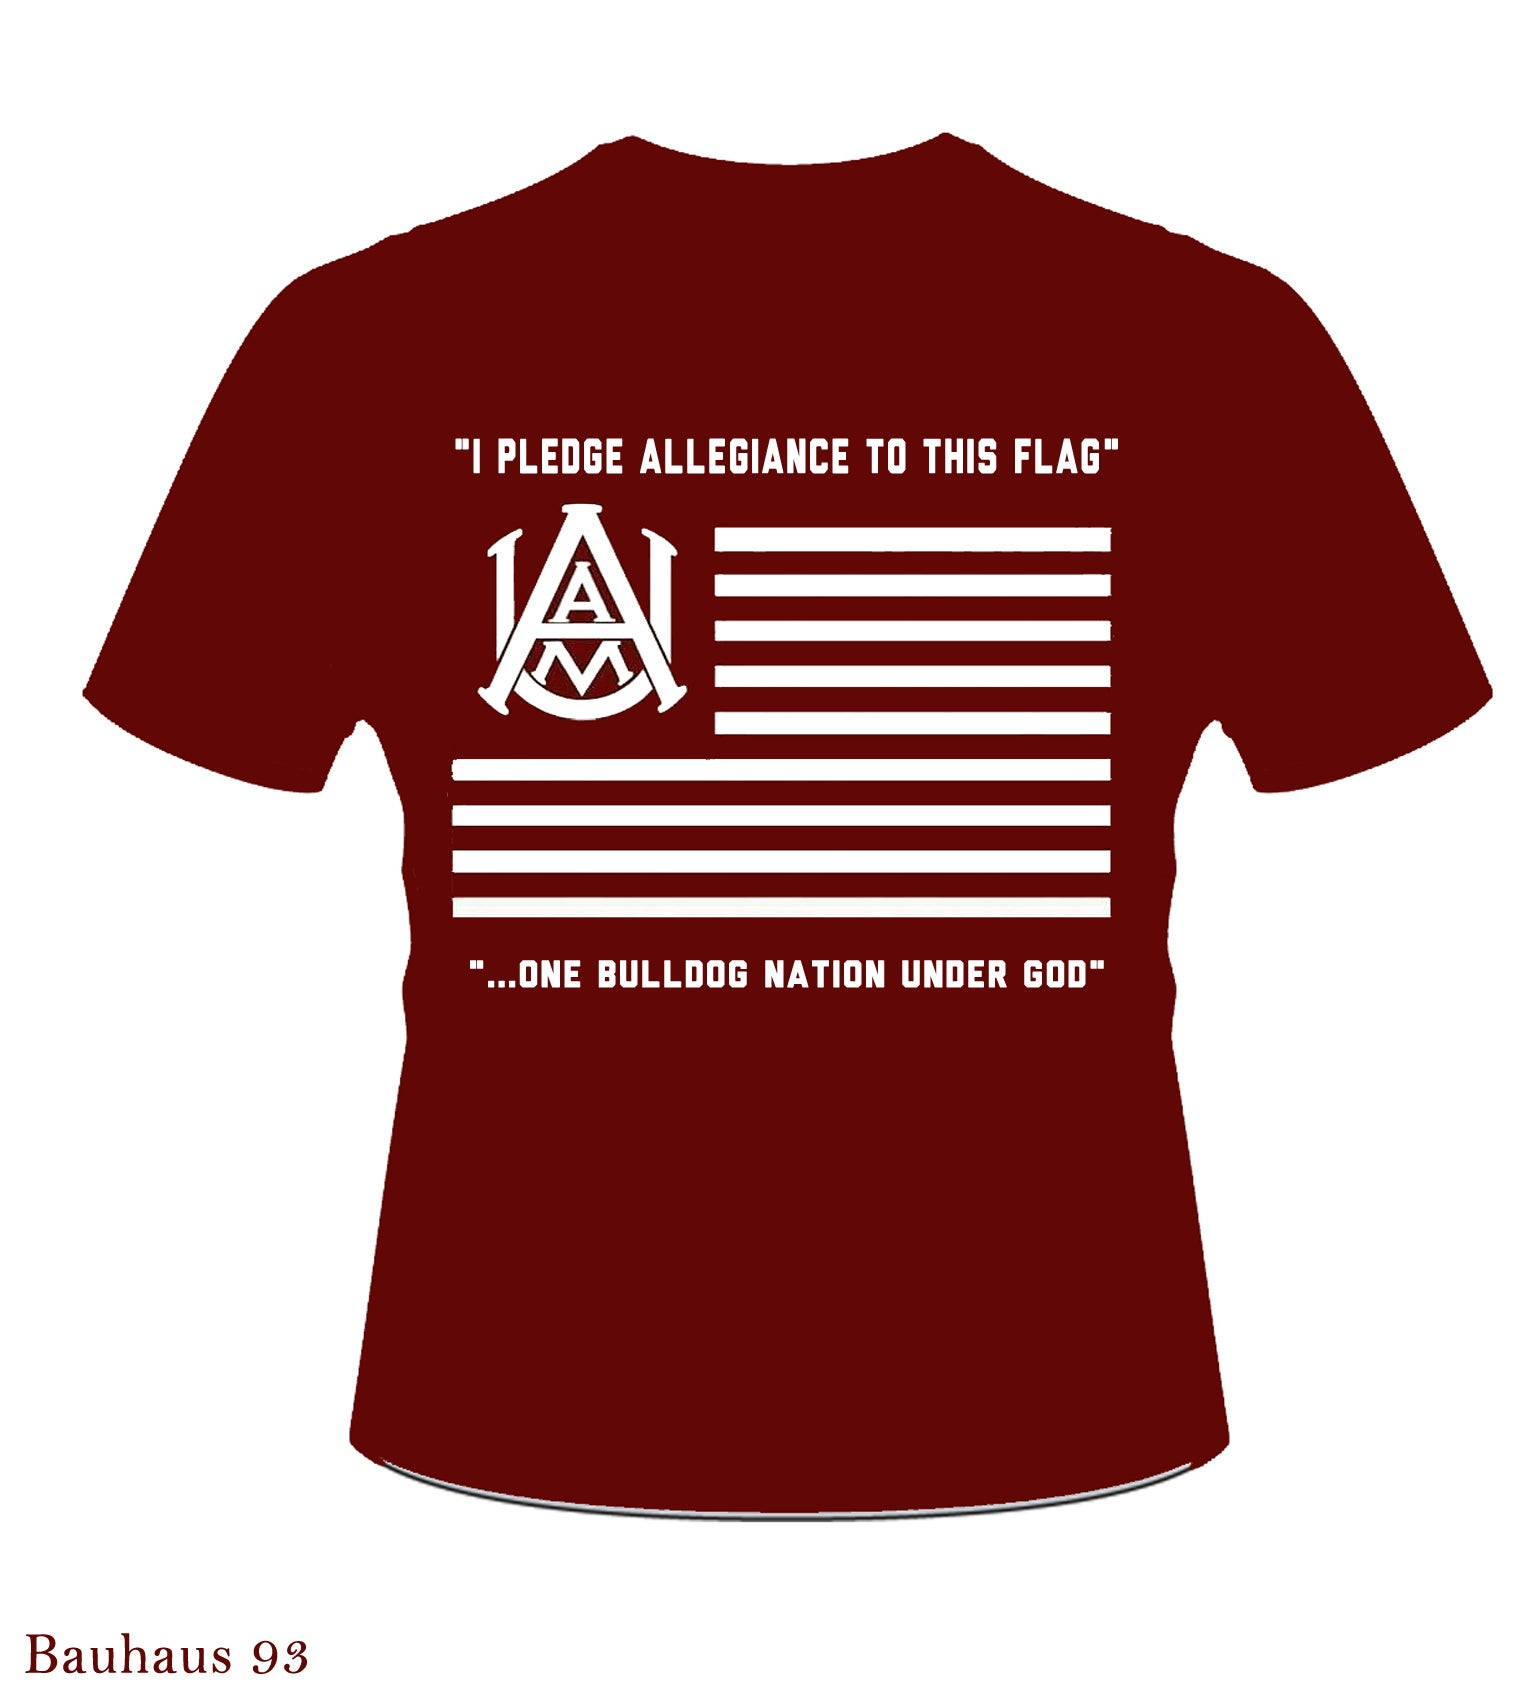 Living Home aamu allegiance shirt better apparel